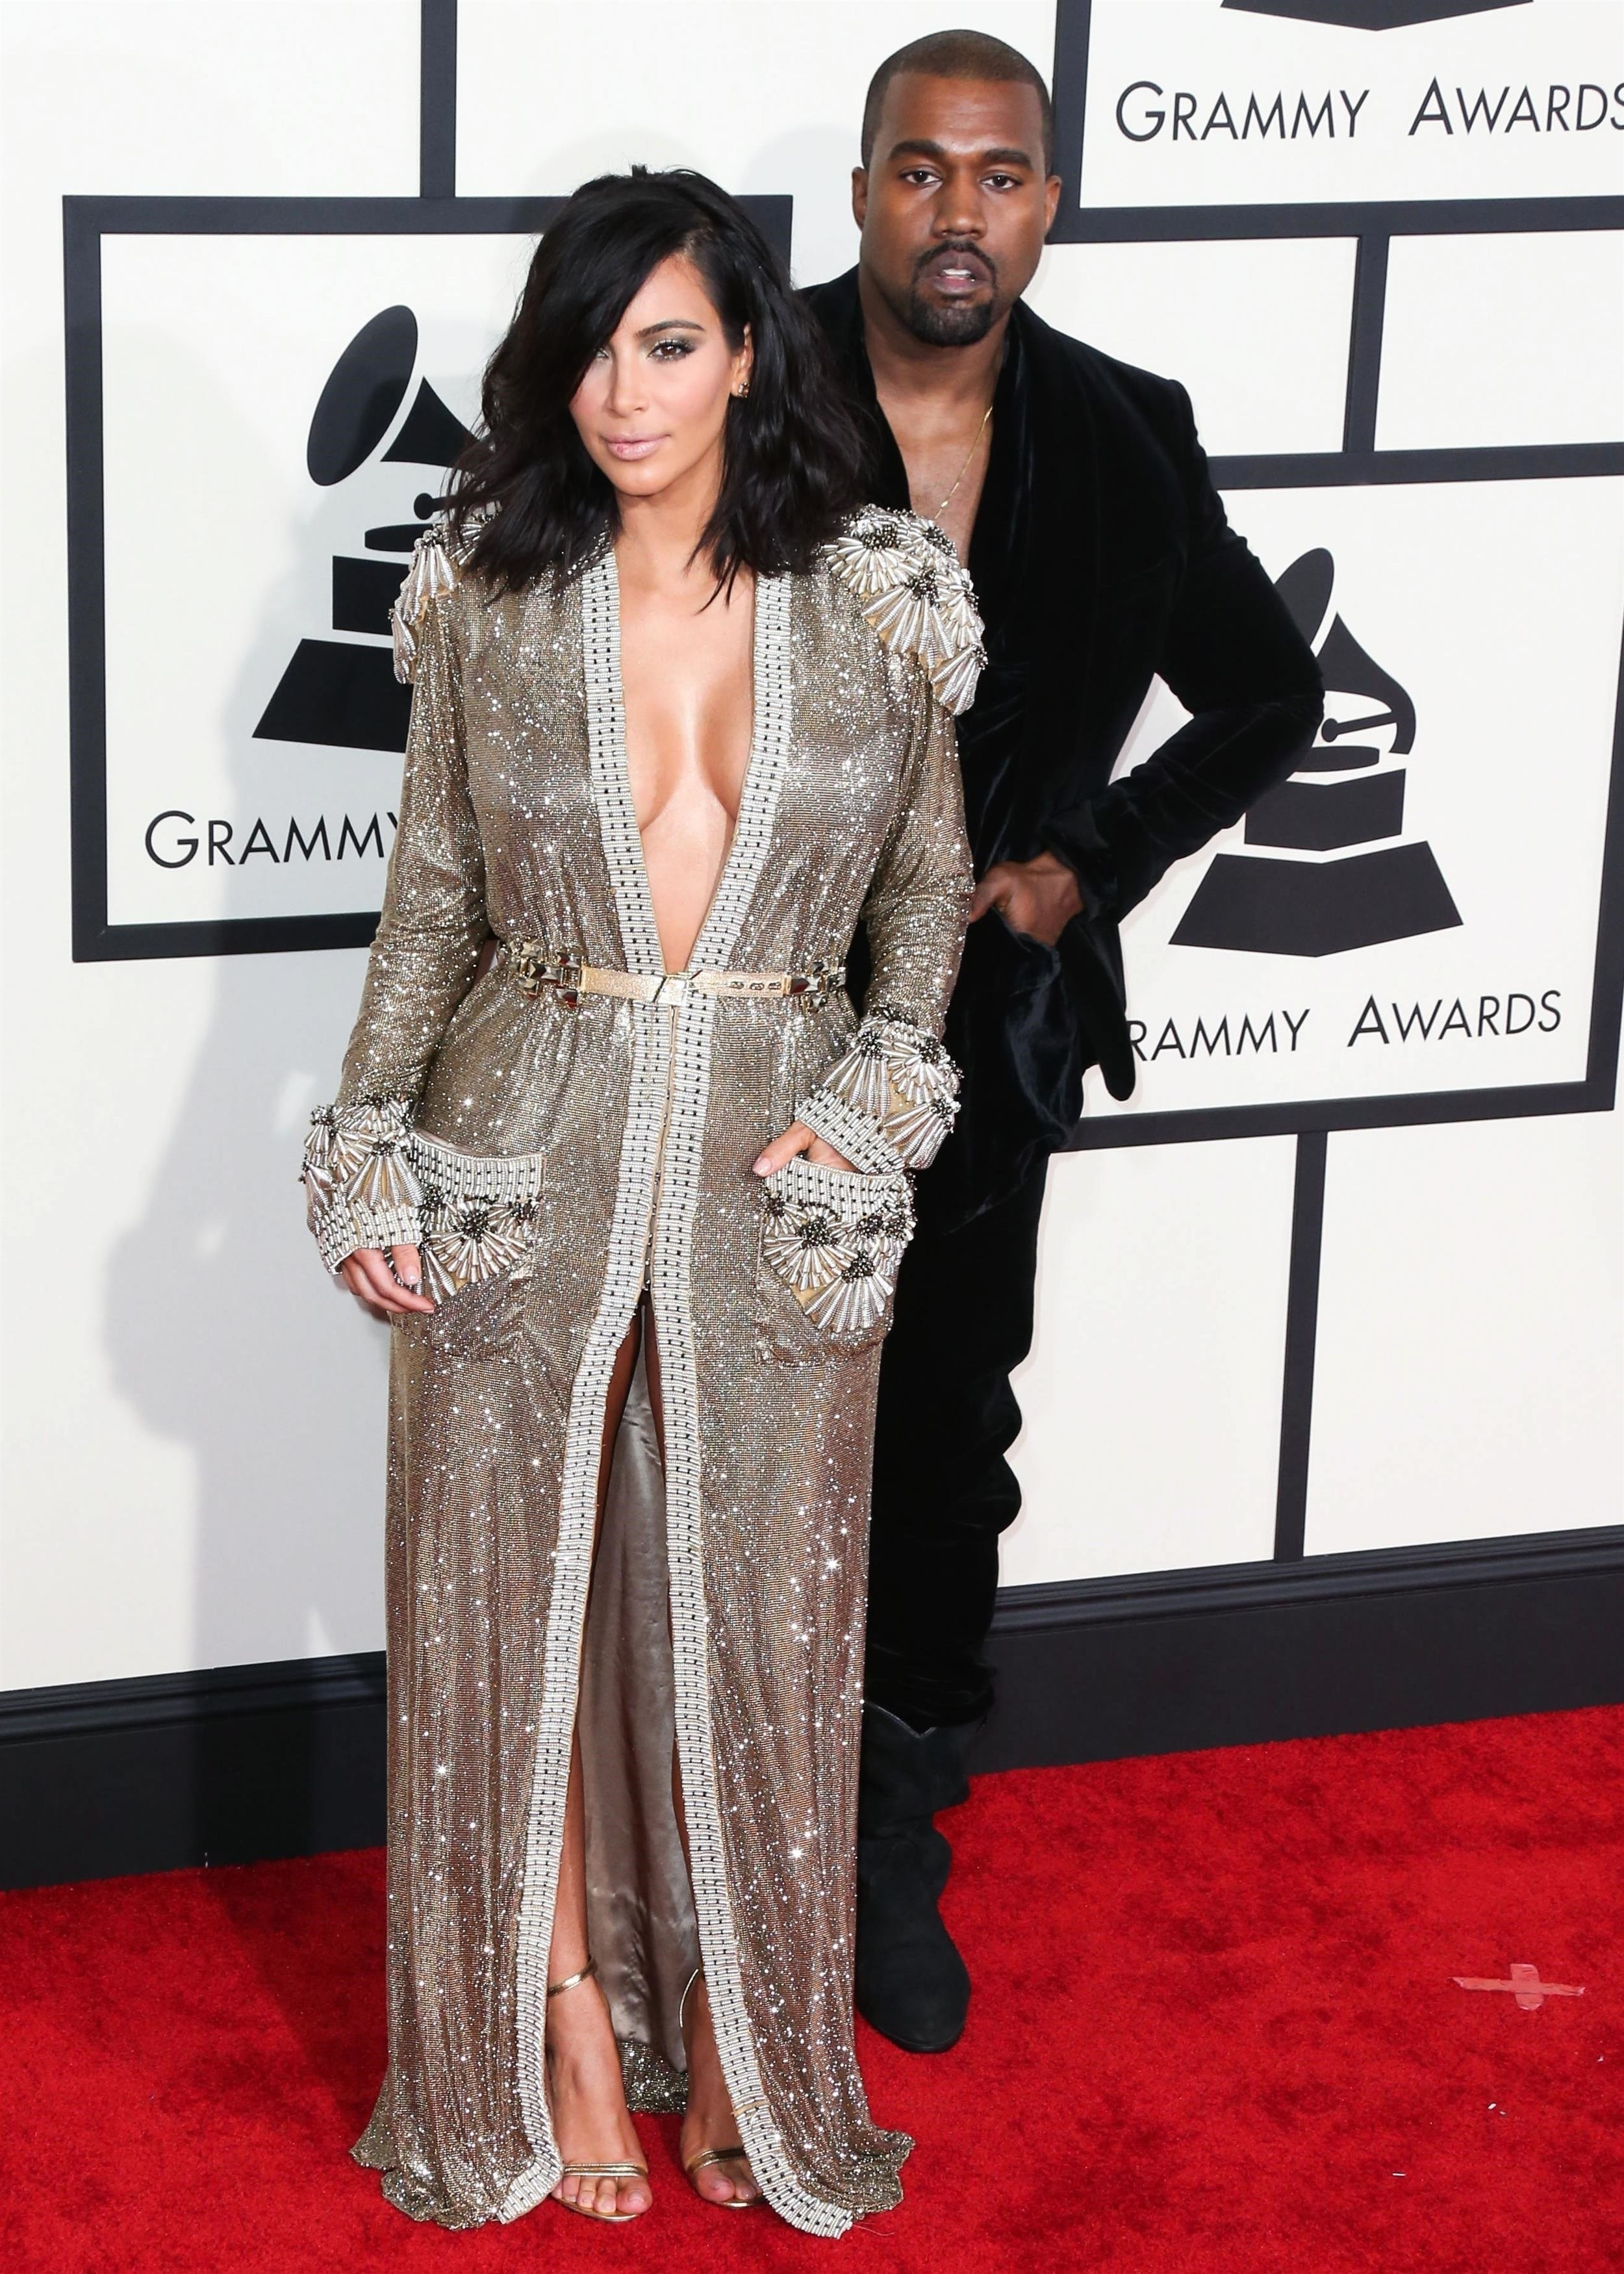 Kim Kardashian West And Husband Kanye West Arrive At The 57th Annual GRAMMY Awards Held At Staples Center On February 8, 2015 In Los Angeles, California. **FILE PHOTOS** **SHOT ON 02/08/2015** КРЕДИТ Backgrid USA/Legion Media